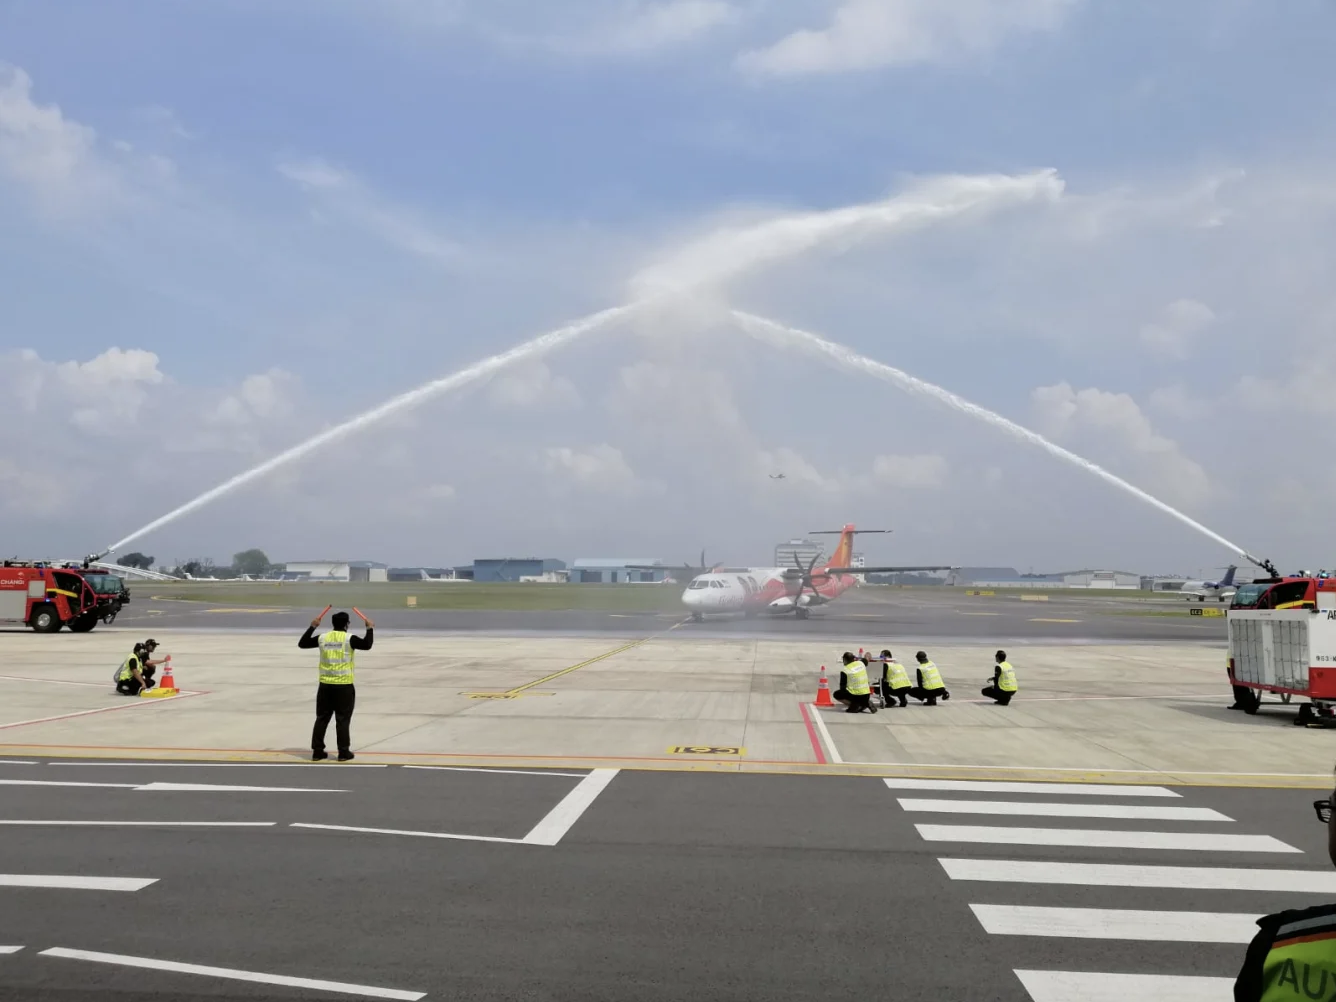 FY3126 welcomed with a water canyon salute on its inaugural flight into Seletar Airport. Photo courtesy: Changi Airport Group